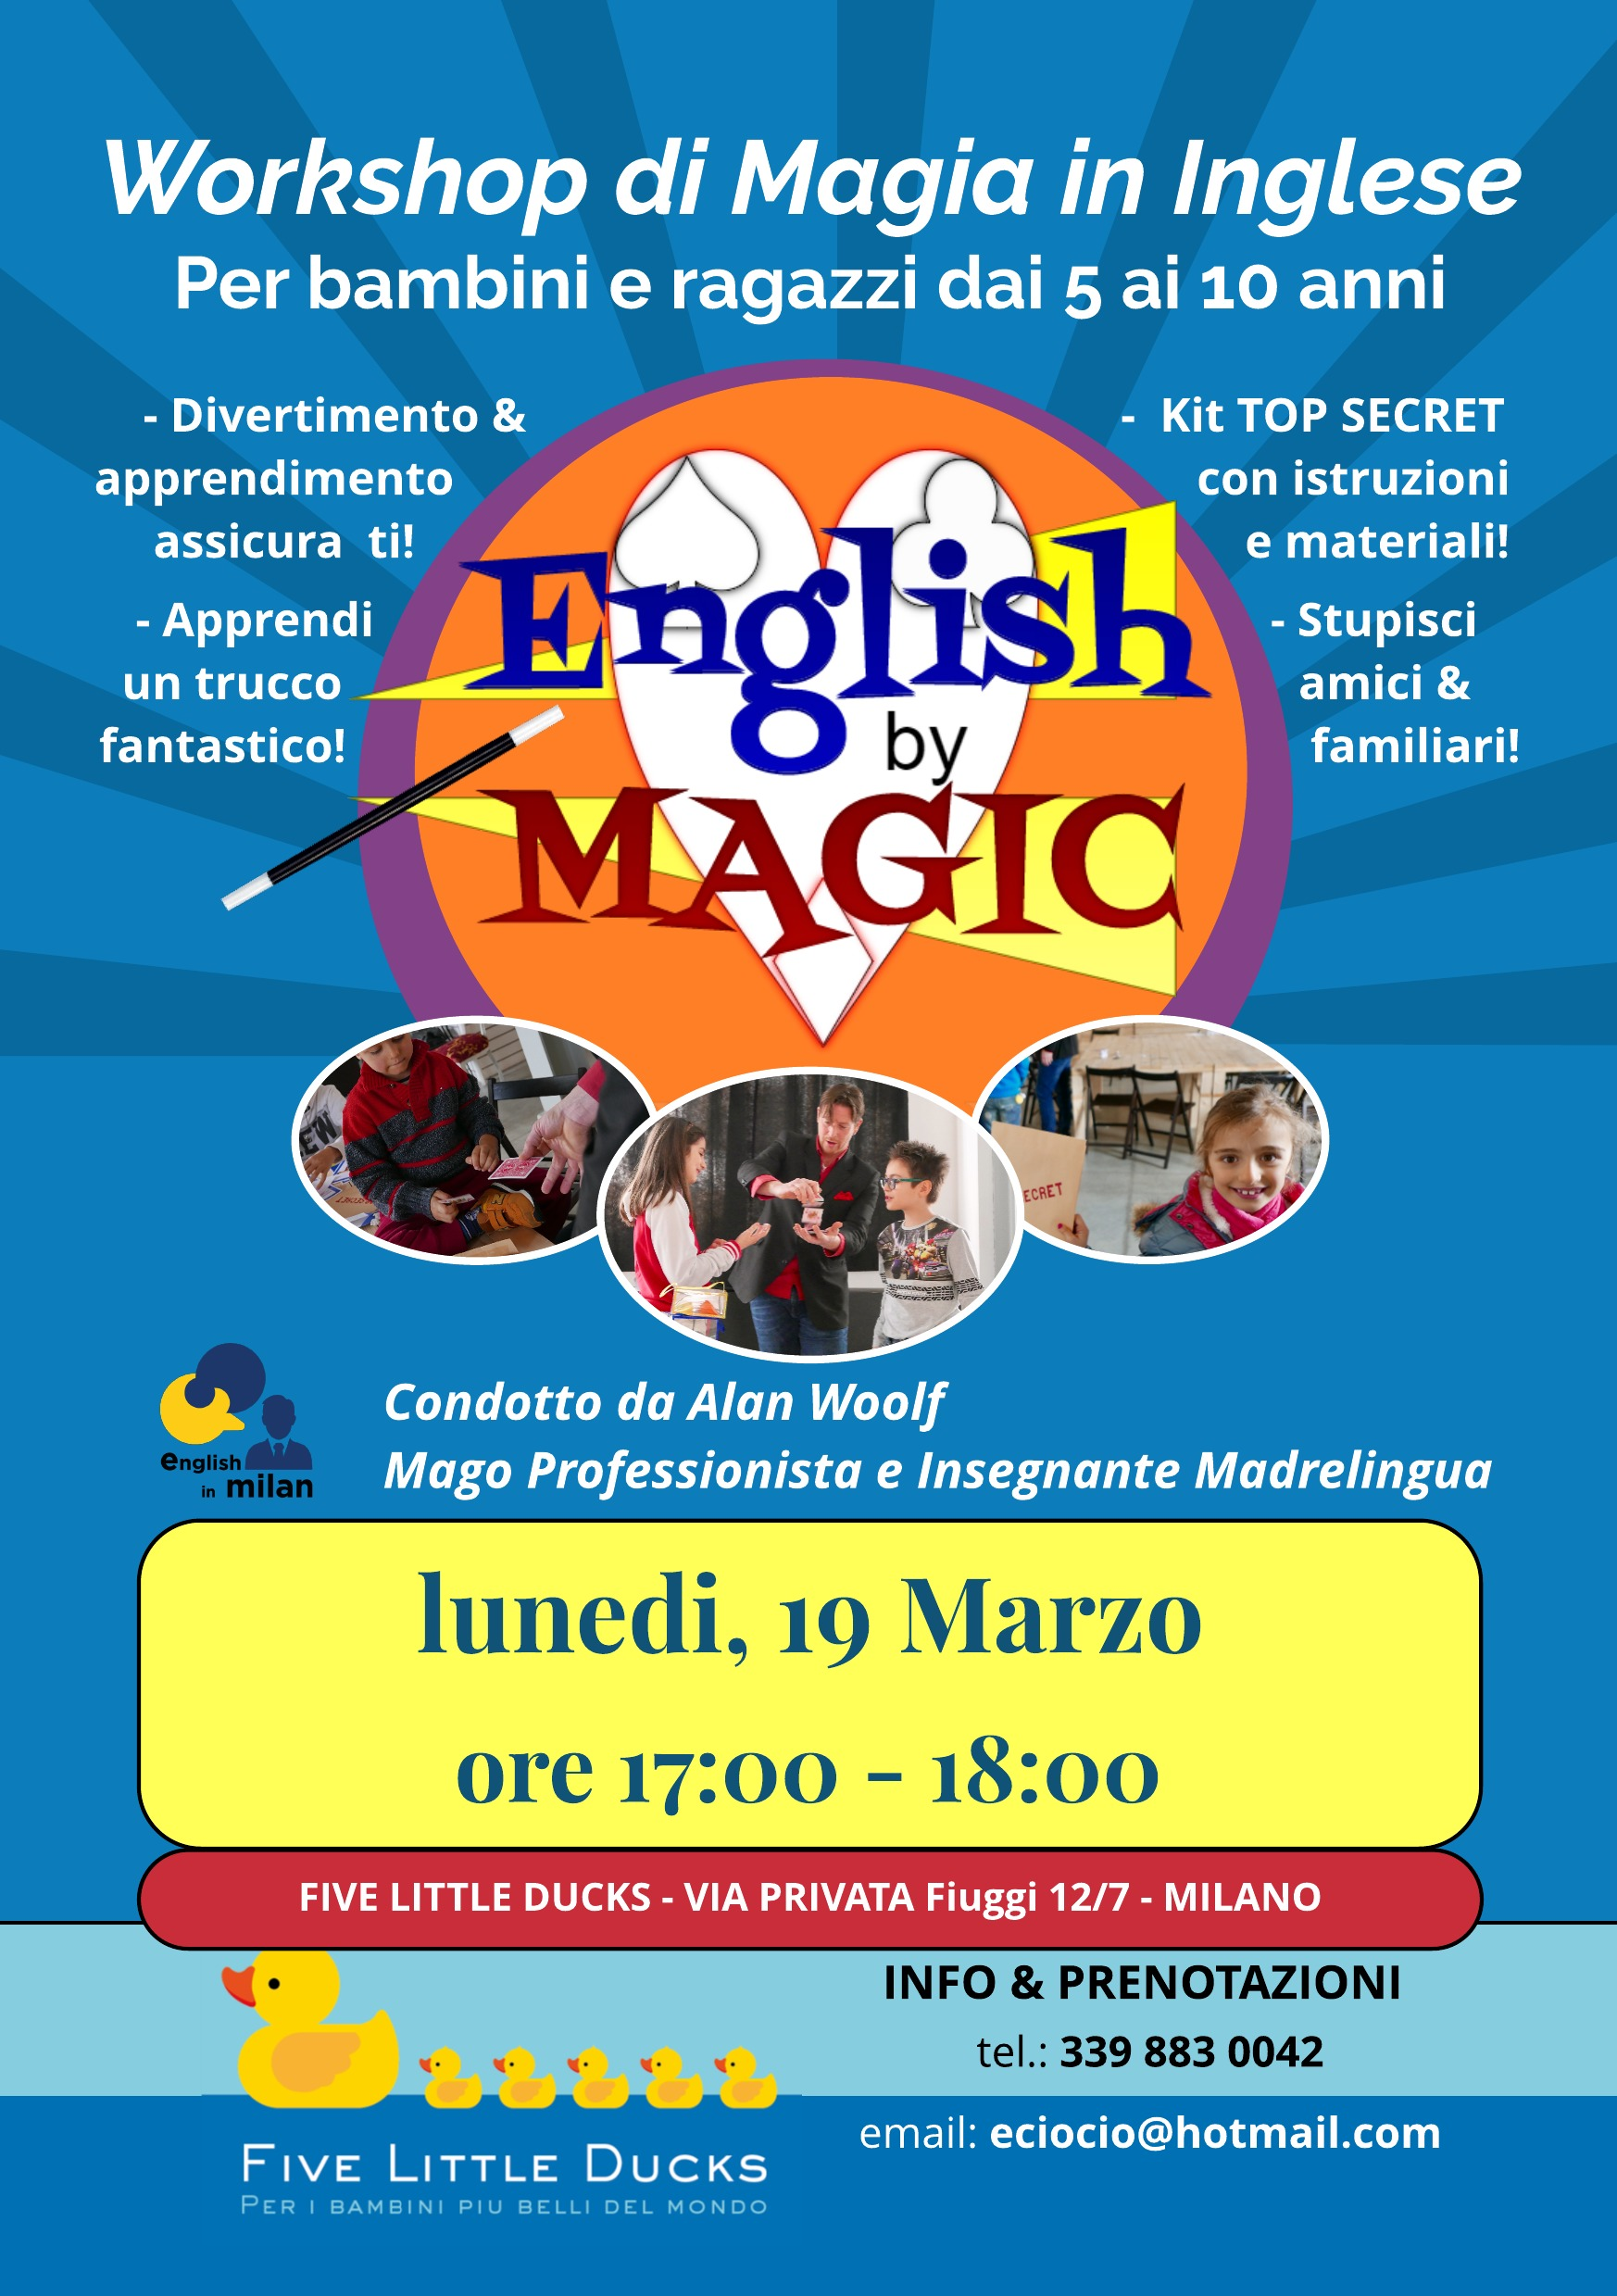 Workshop di Magia in Inglese